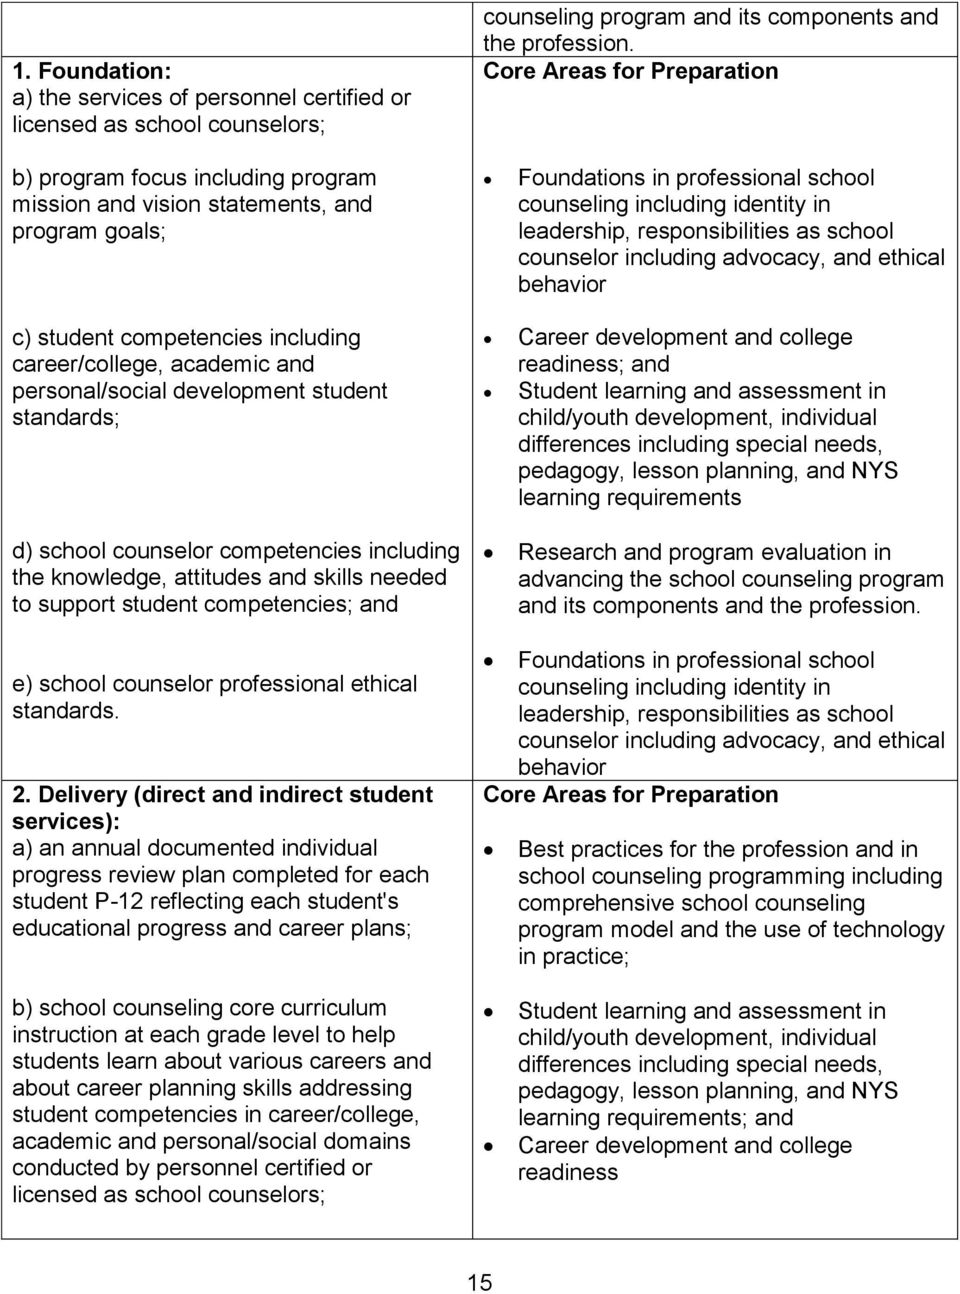 development student standards; d) school counselor competencies including the knowledge, attitudes and skills needed to support student competencies; and Foundations in professional school counseling